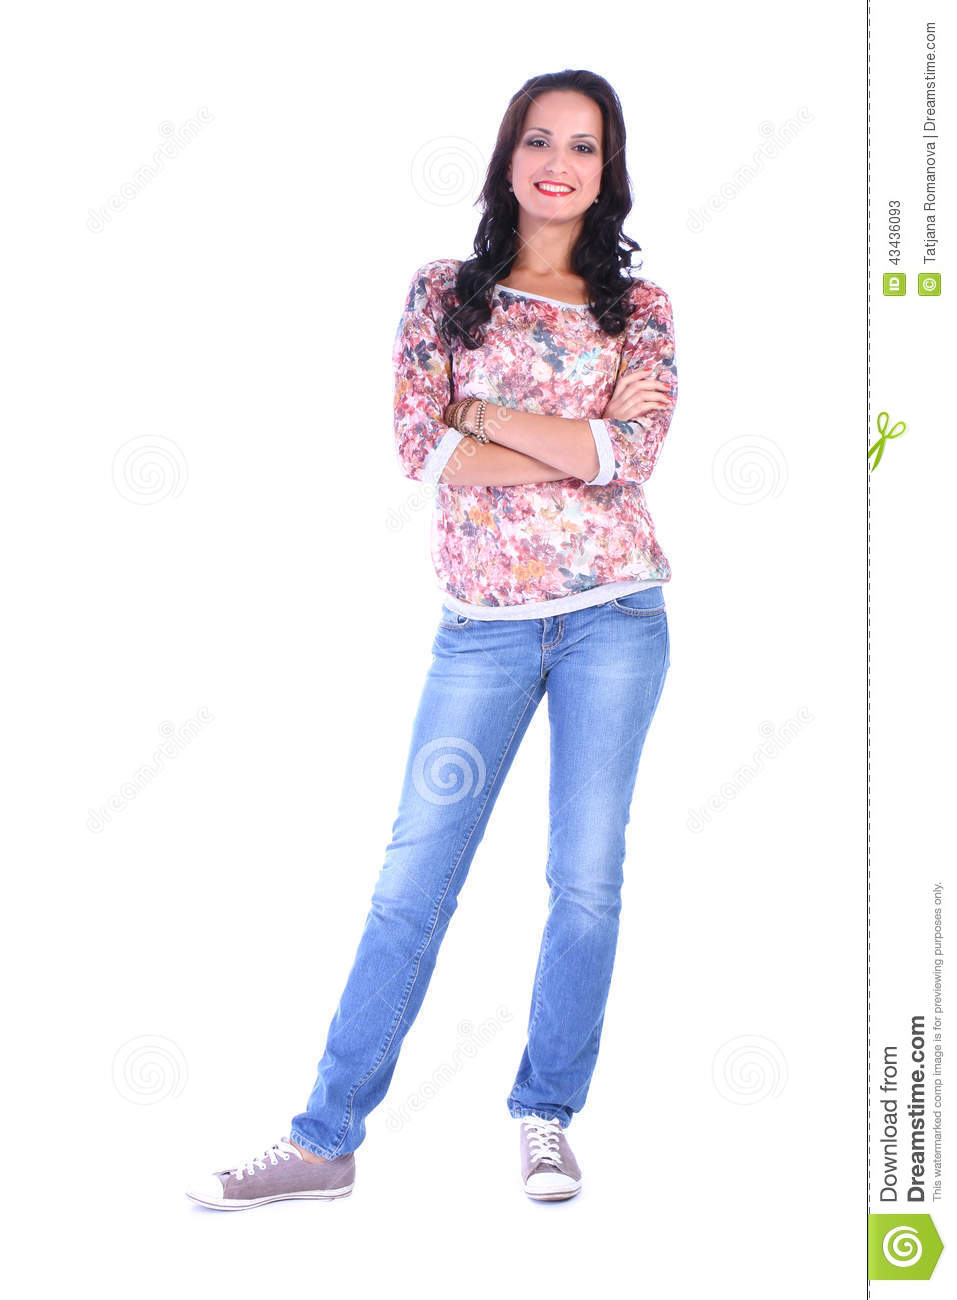 Full length picture of young woman in jeans standing